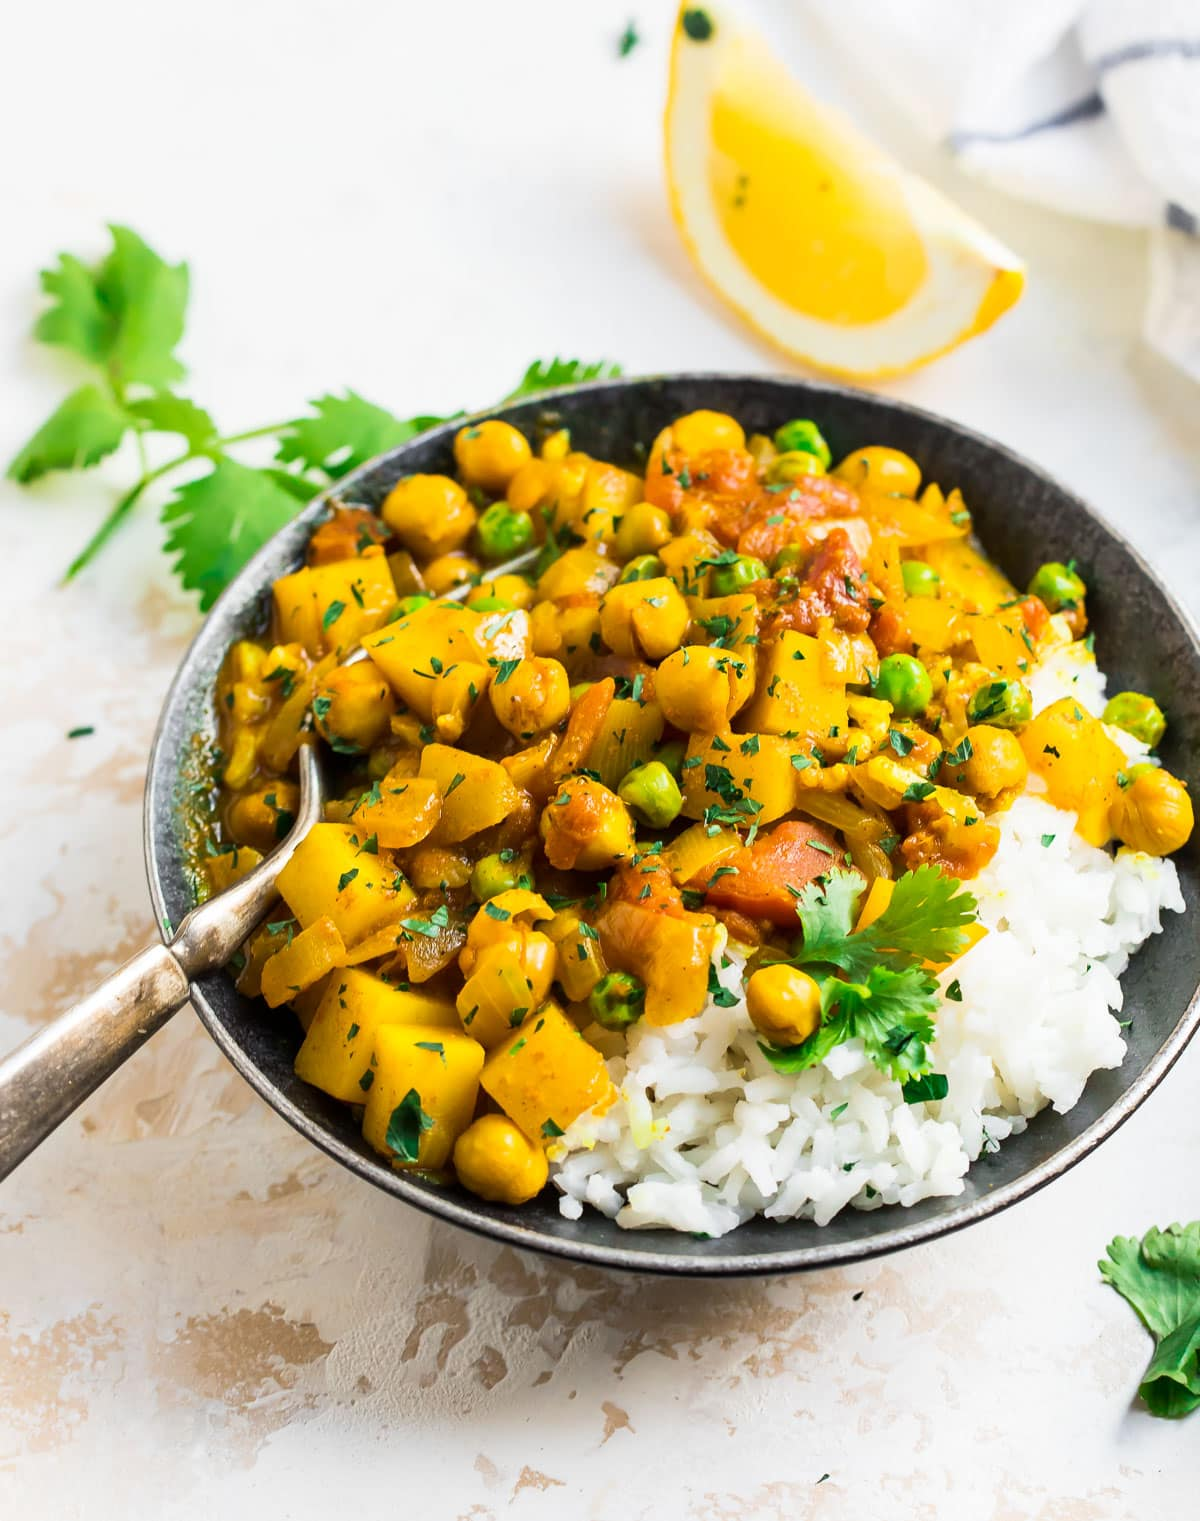 Potato curry with rice and chickpeas in a bowl